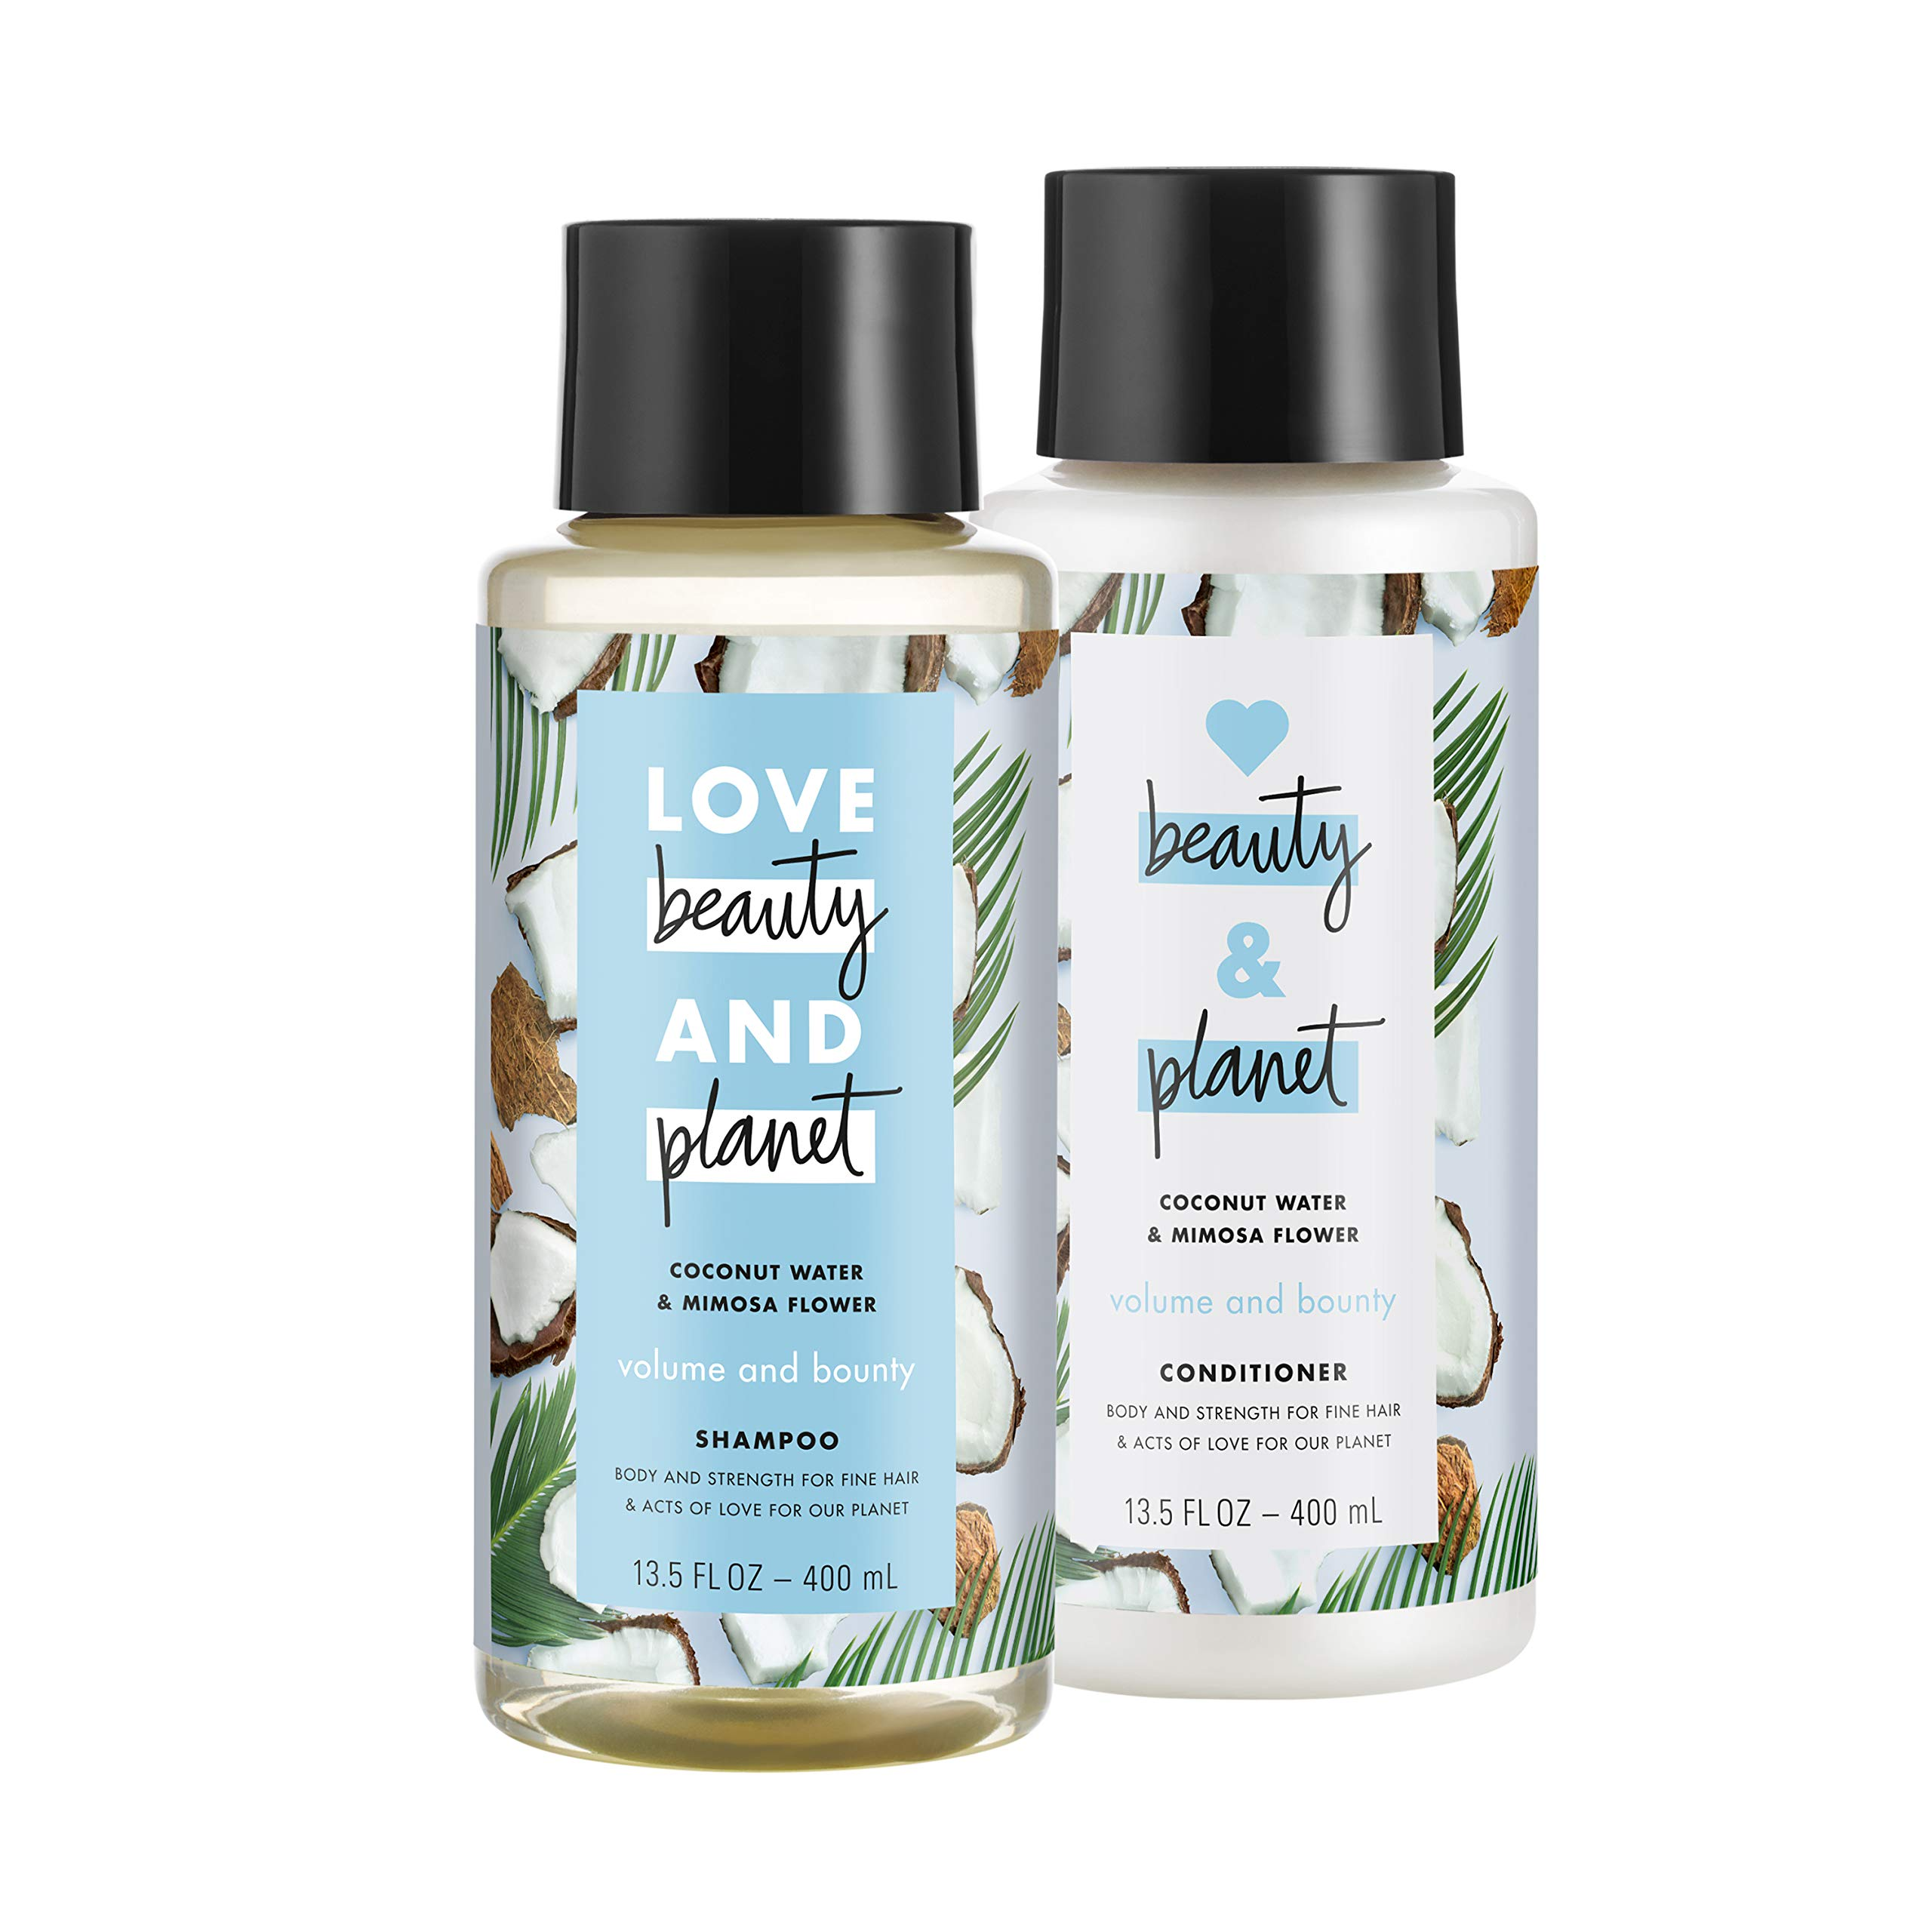 Love Beauty And Planet Volumizing Shampoo and Conditioner, Paraben Free, Silicone Free, and Vegan, Coconut Water & Mimosa Flower, 13.5 oz, 2 count by LBP HAIR